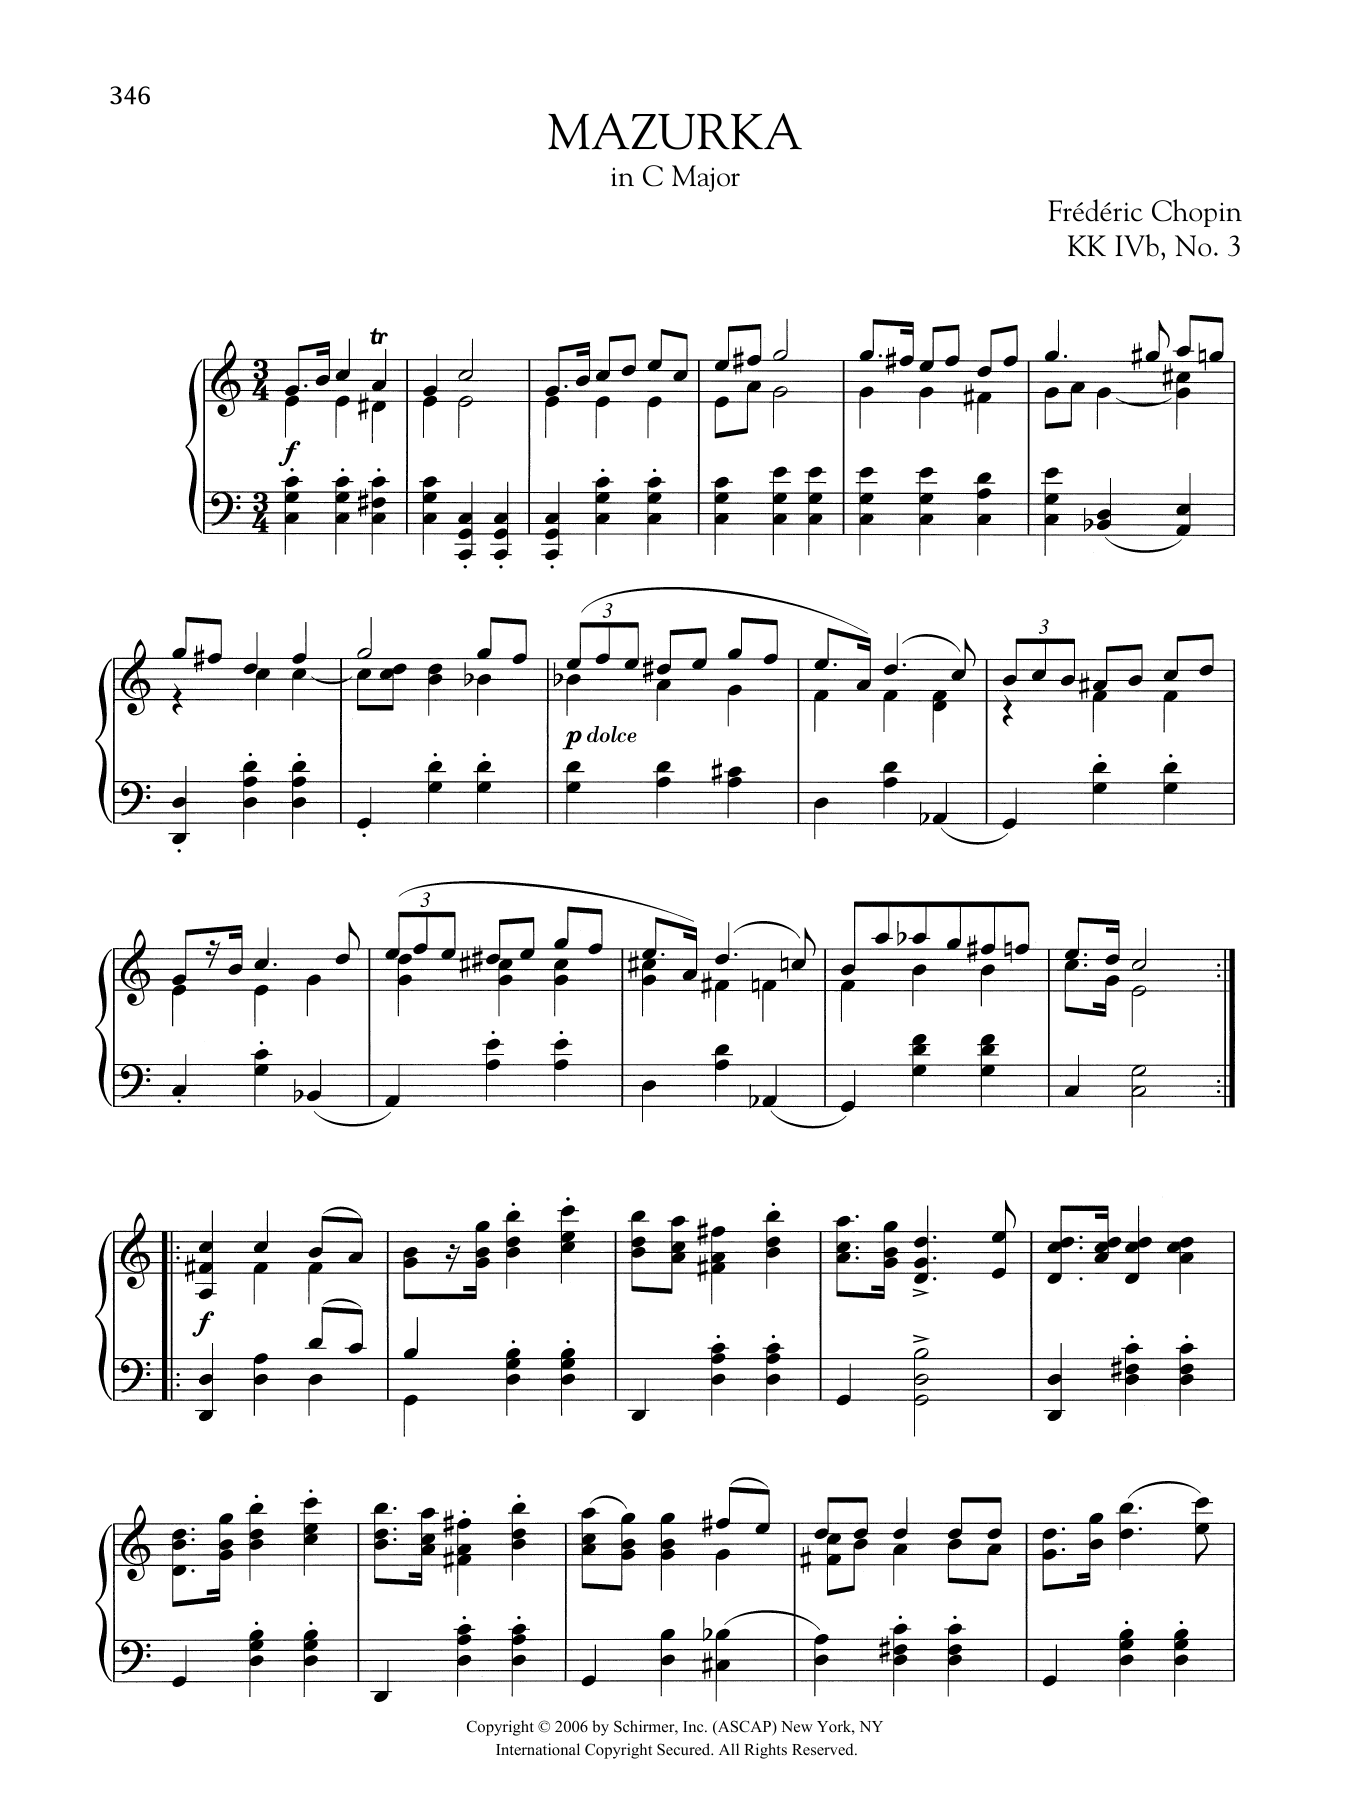 Mazurka in C Major, KK. IVb, No. 3 Sheet Music